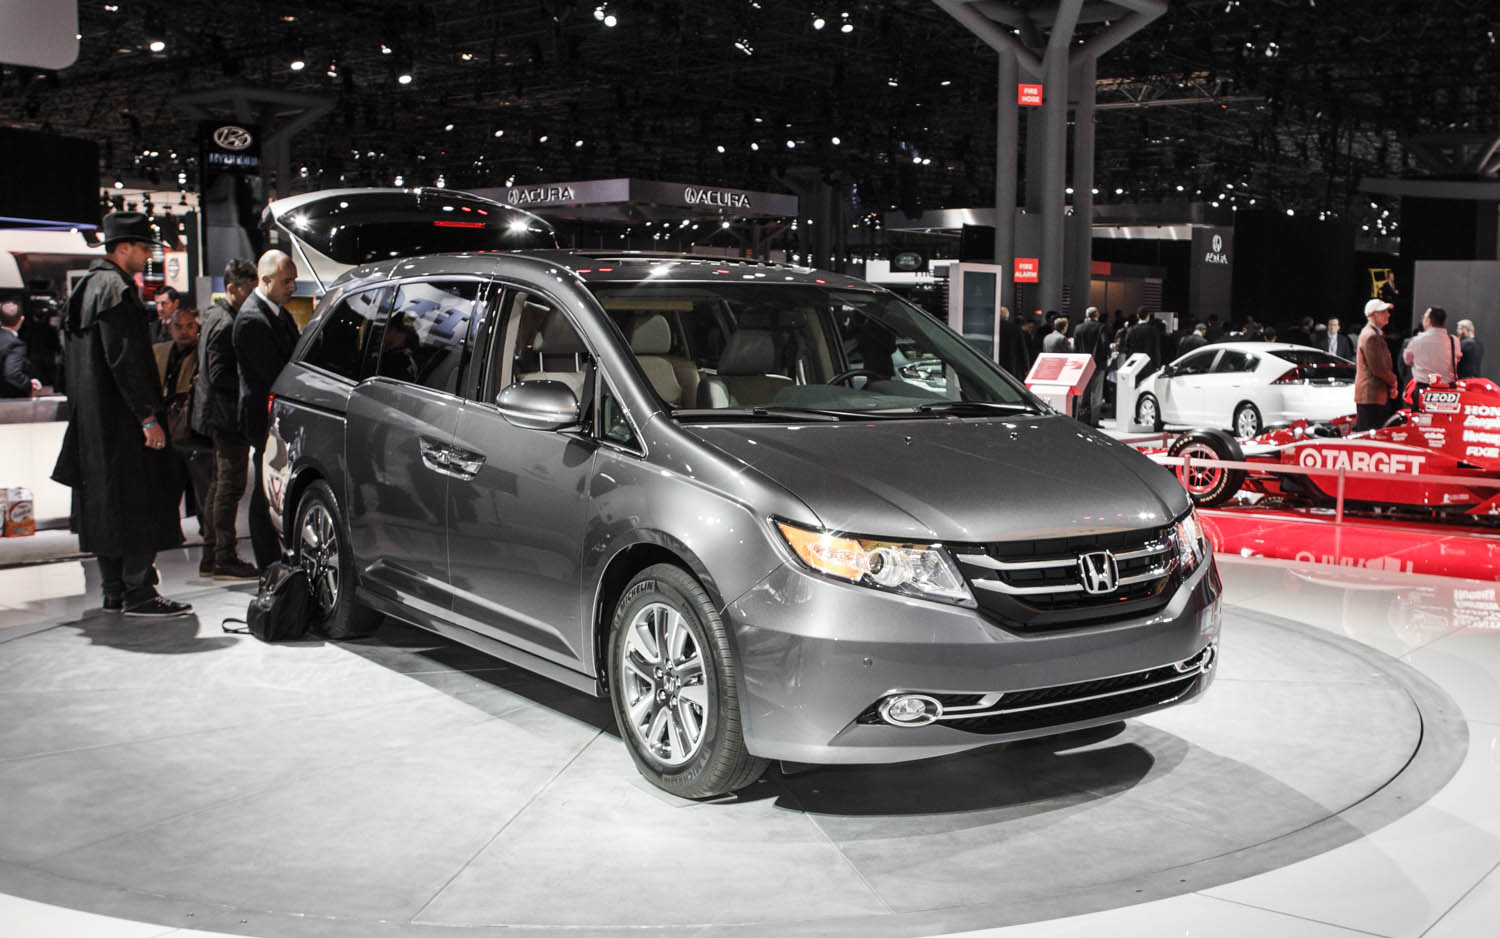 2014 honda odyssey for sale in everett klein honda blogs honda dealer in everett wa. Black Bedroom Furniture Sets. Home Design Ideas